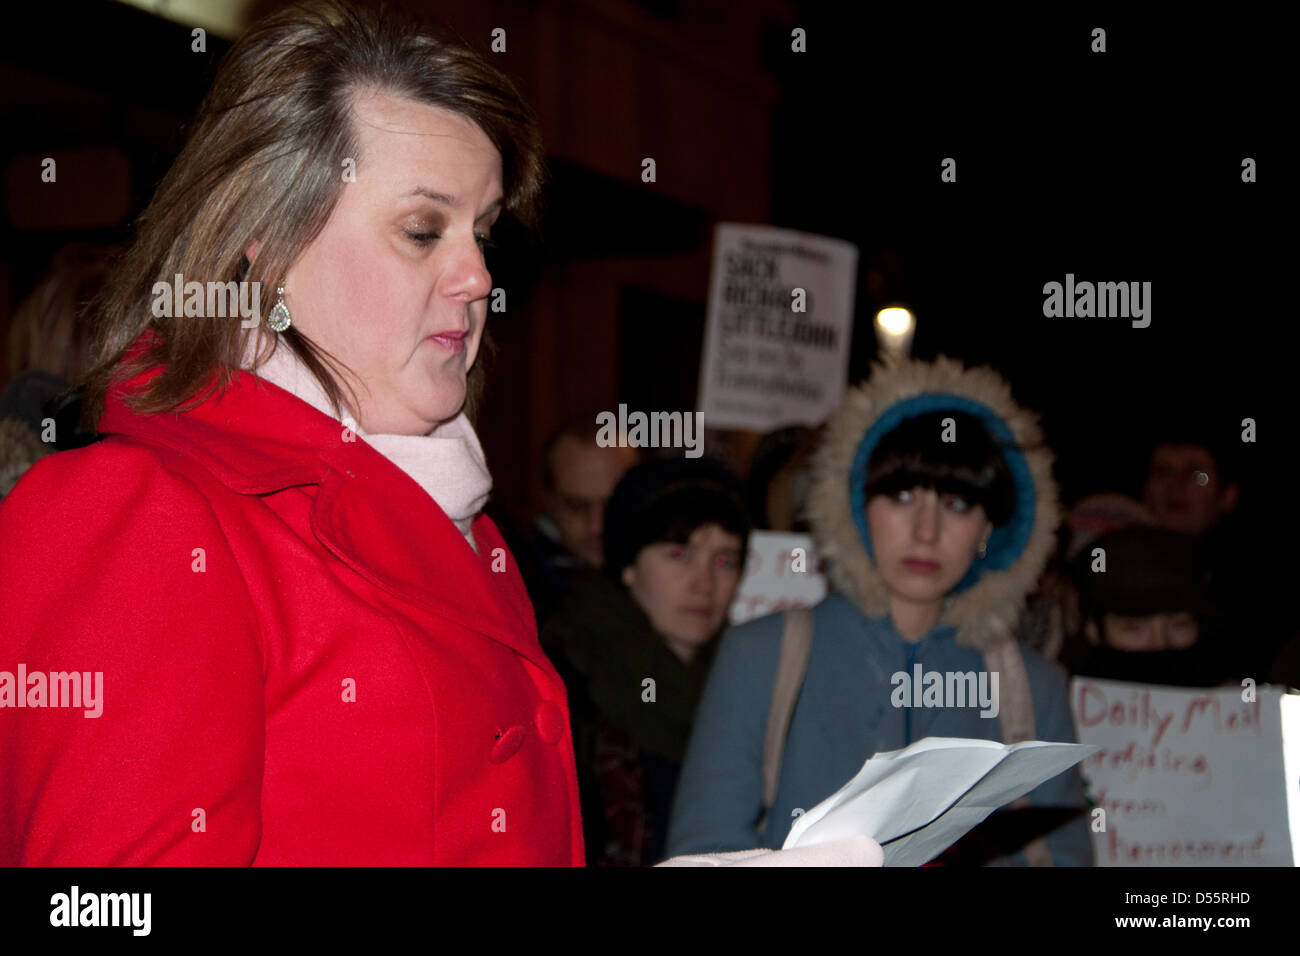 London, UK. 25th March, 2013.   A speaker addresses the crowd at a candle-lit vigil in memory of deceased schoolteacher - Stock Image